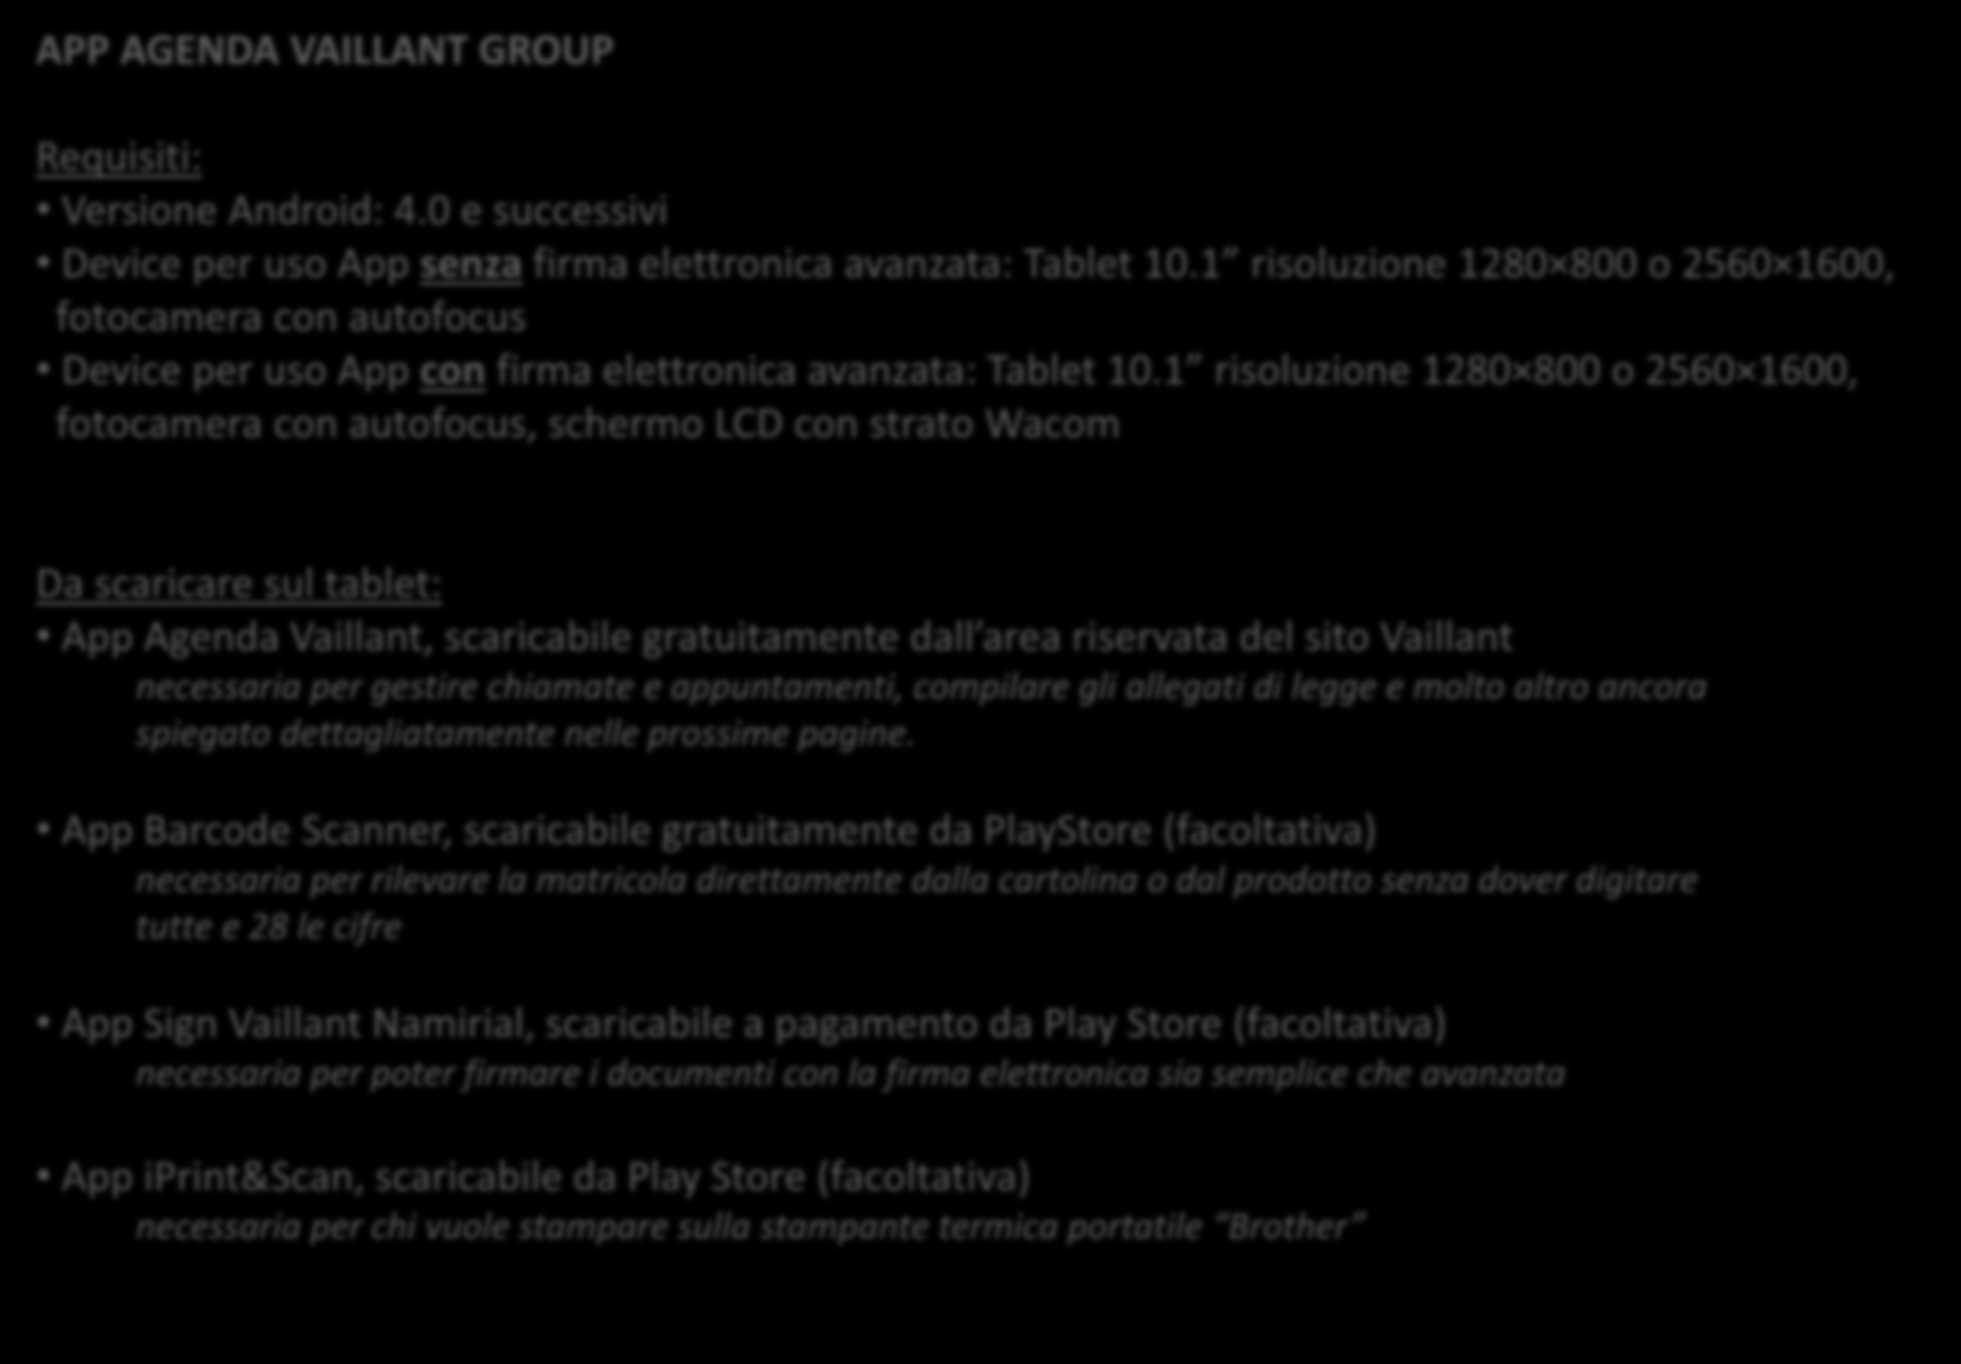 APP AGENDA VAILLANT GROUP Requisiti: Versione Android: 4.0 e successivi Device per uso App senza firma elettronica avanzata: Tablet 10.